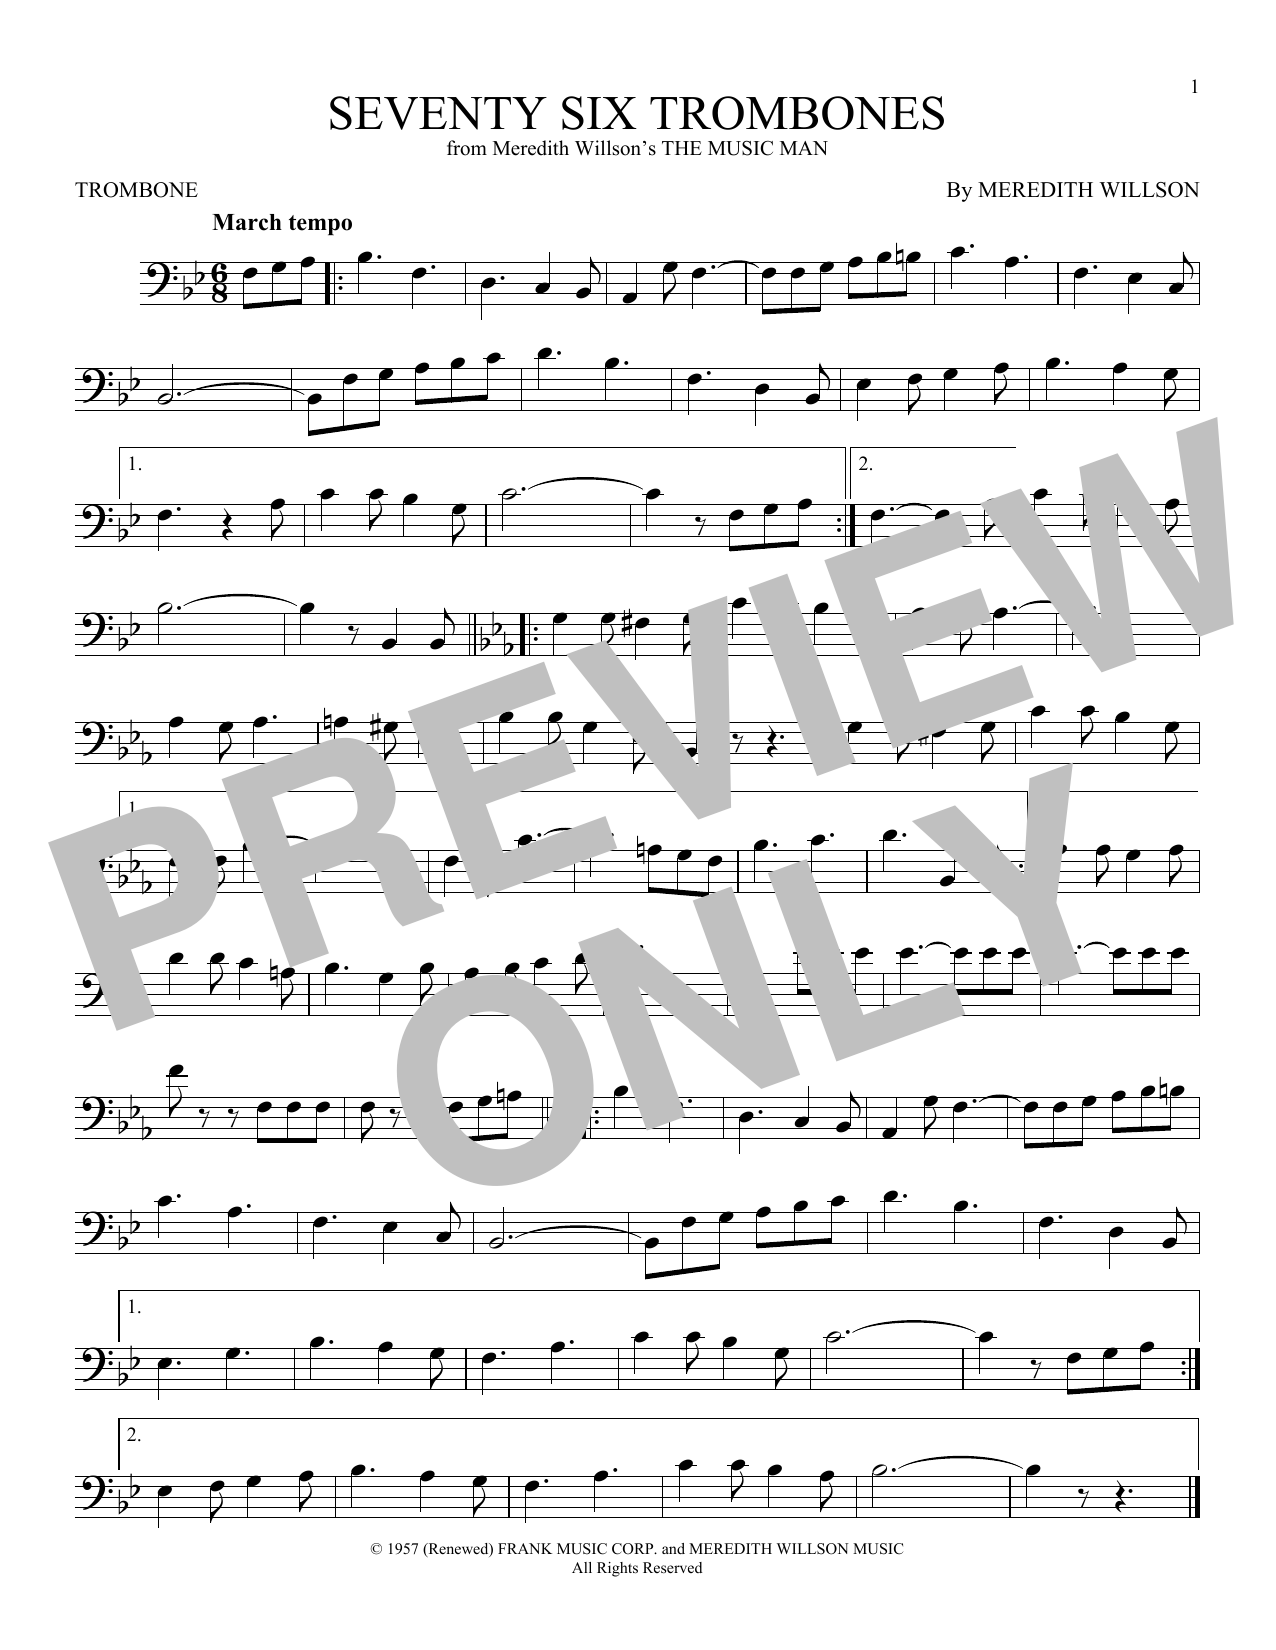 Seventy Six Trombones Sheet Music